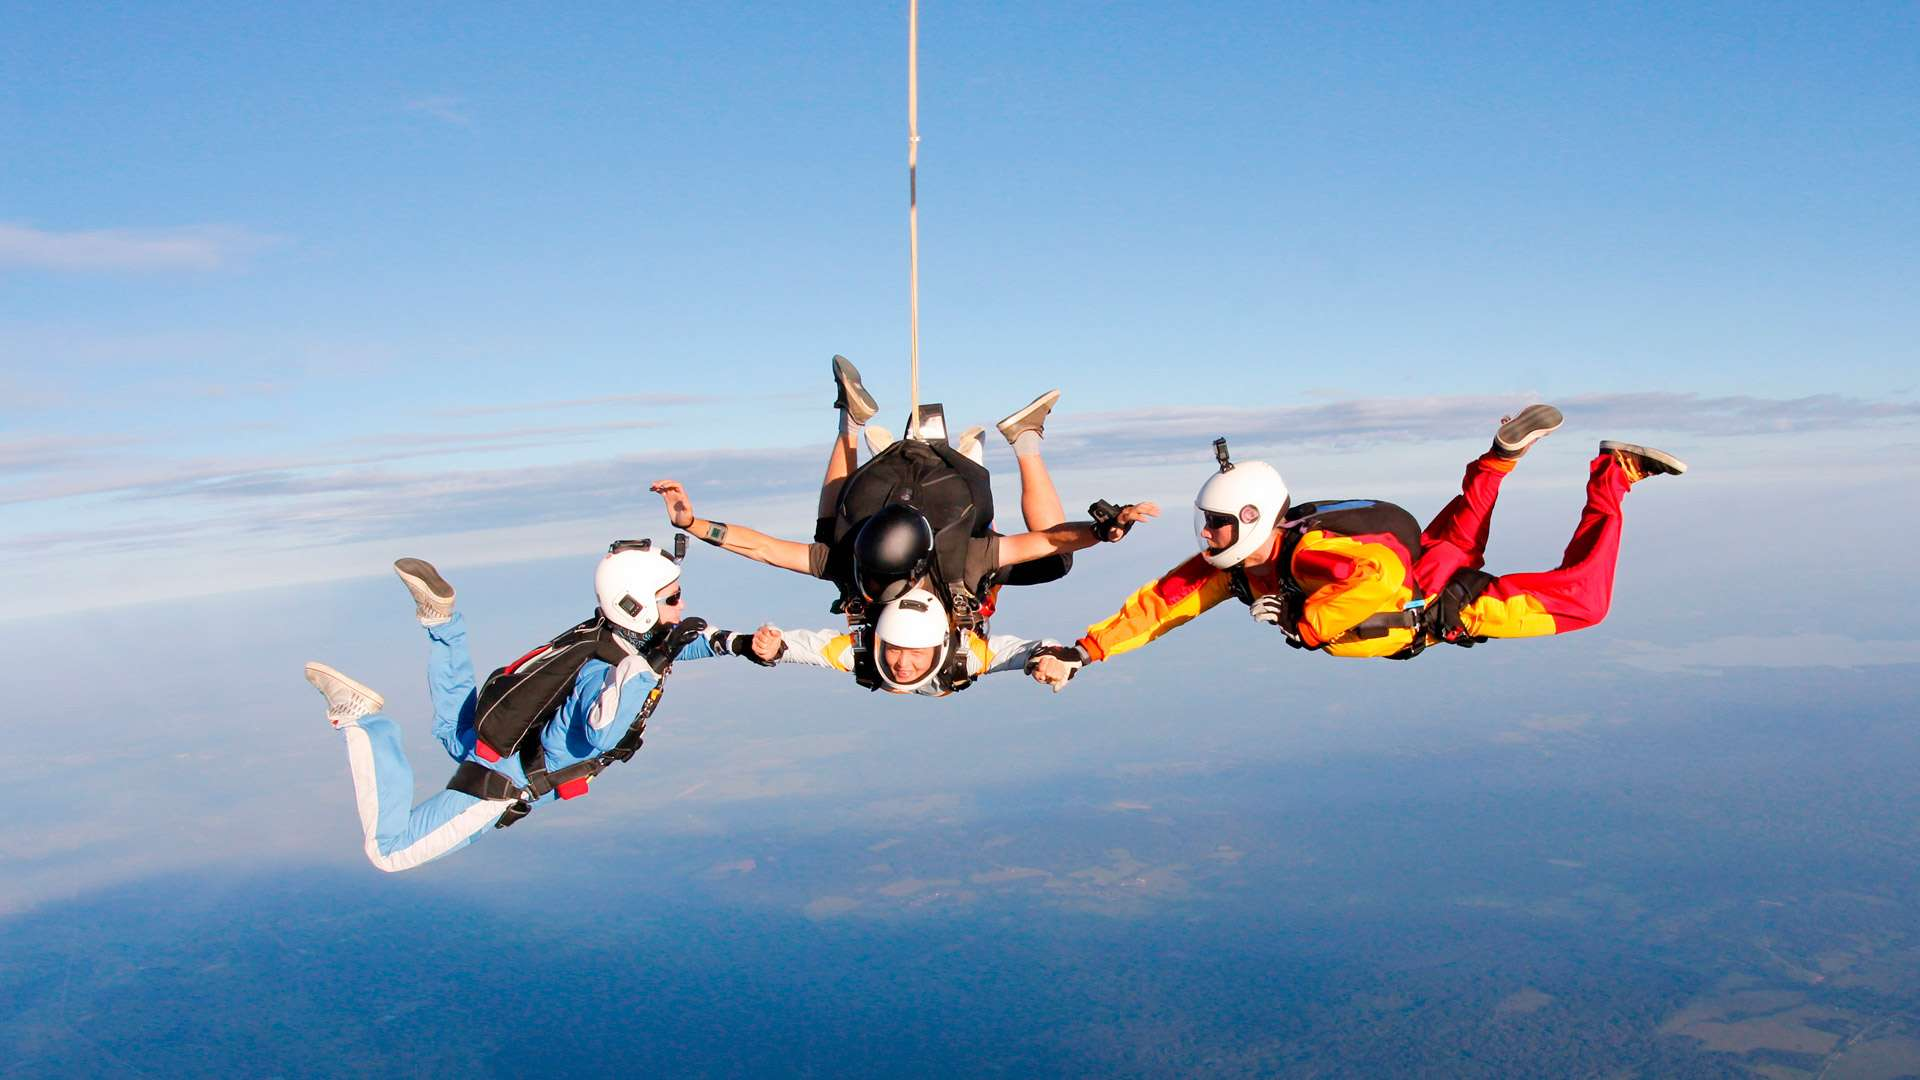 Mexico Skydiving